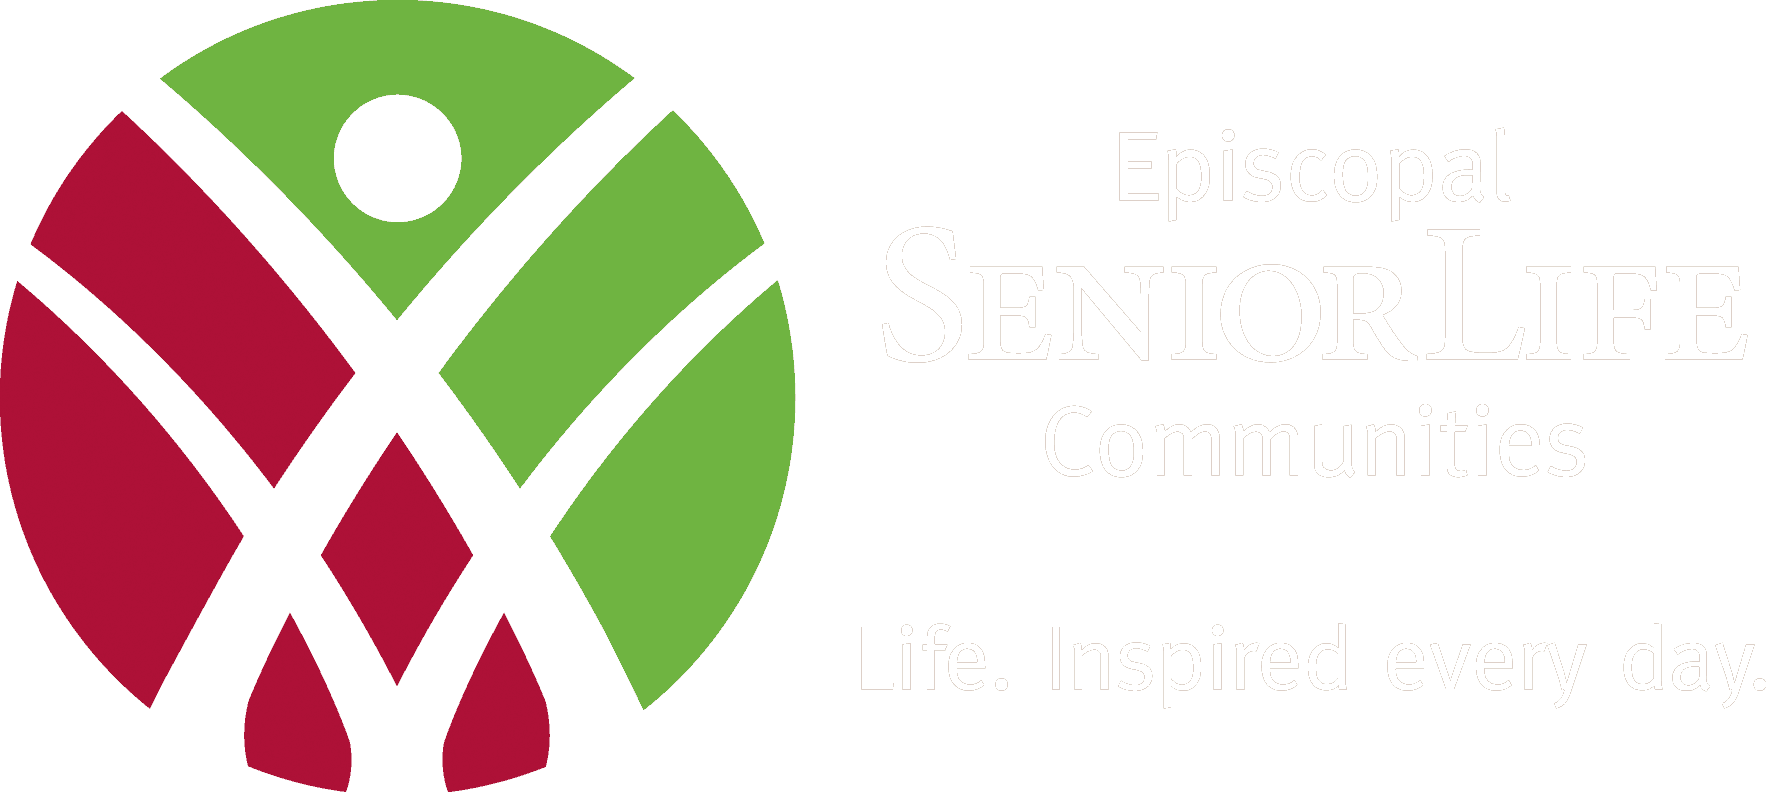 Episcopal SeniorLife Communities: Senior Living in Rochester, NY